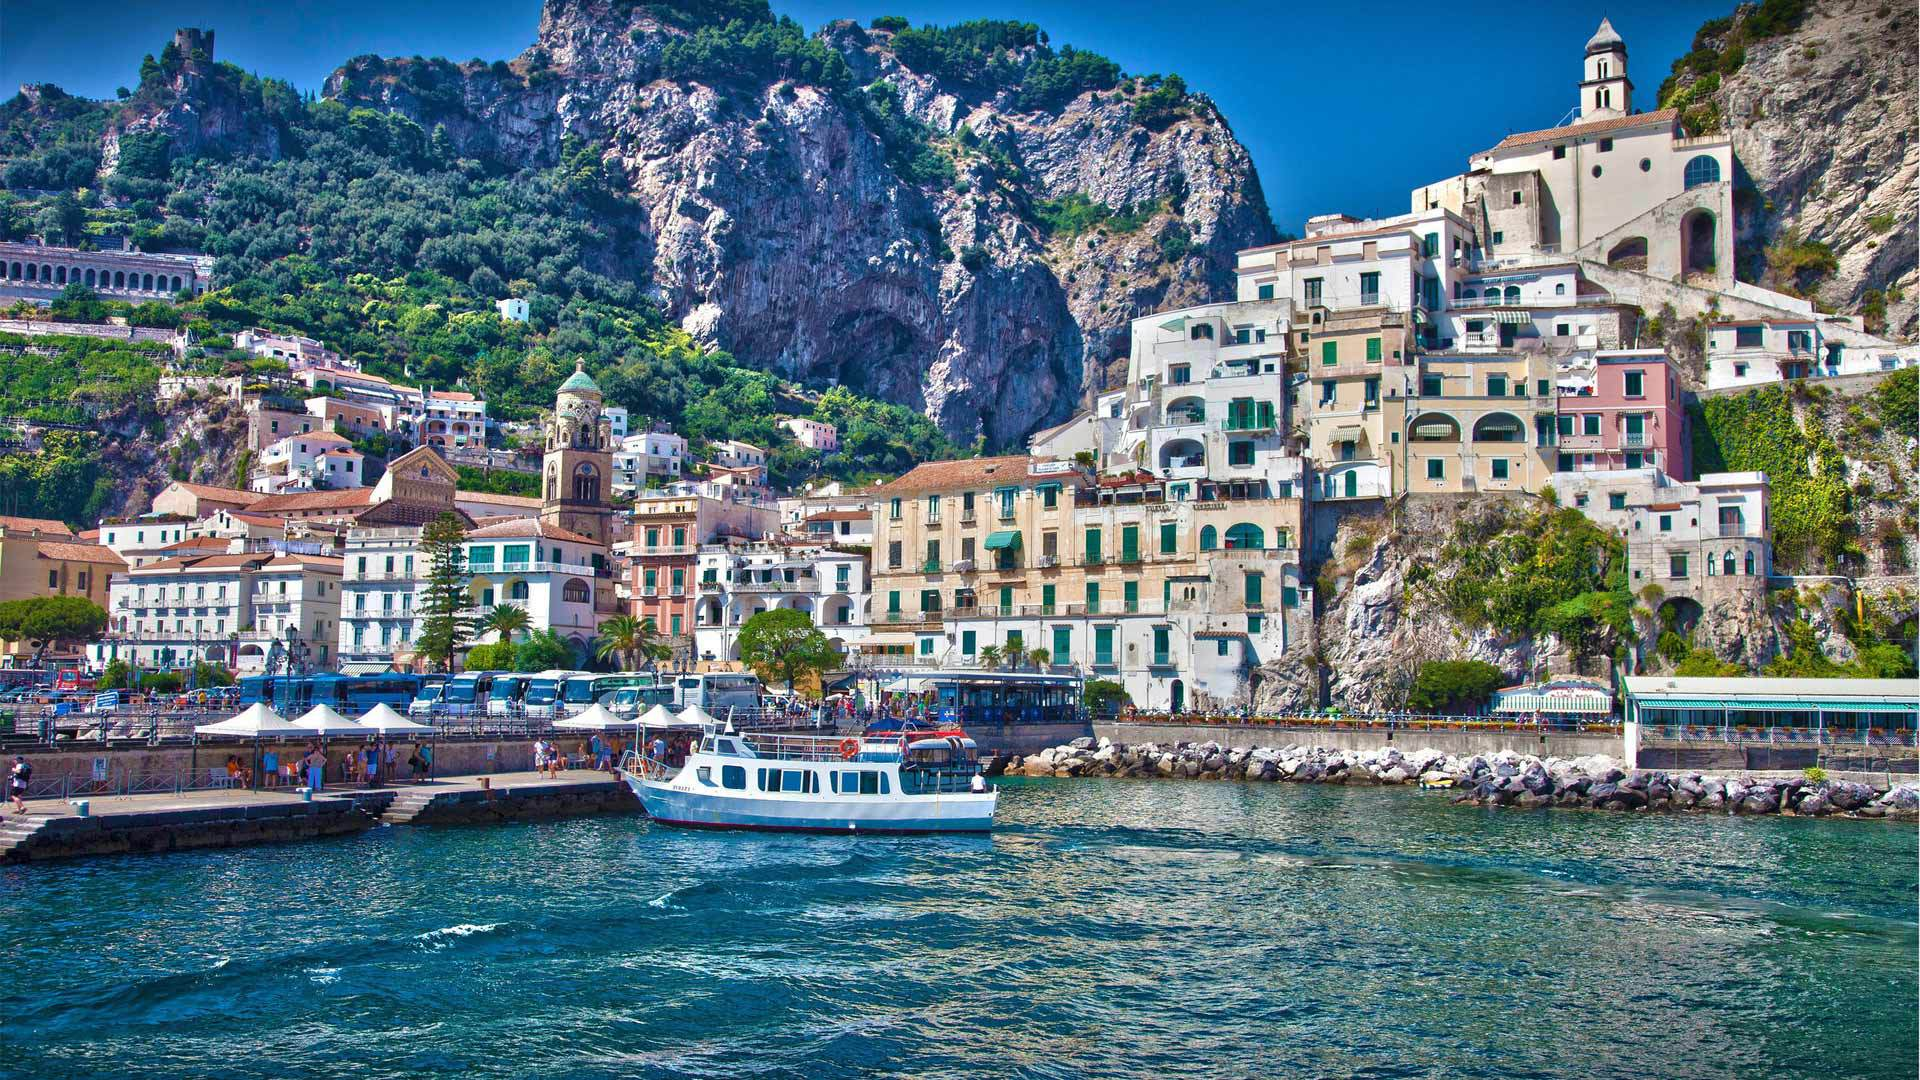 At the pier at a resort in Amalfi, Italy wallpapers and image